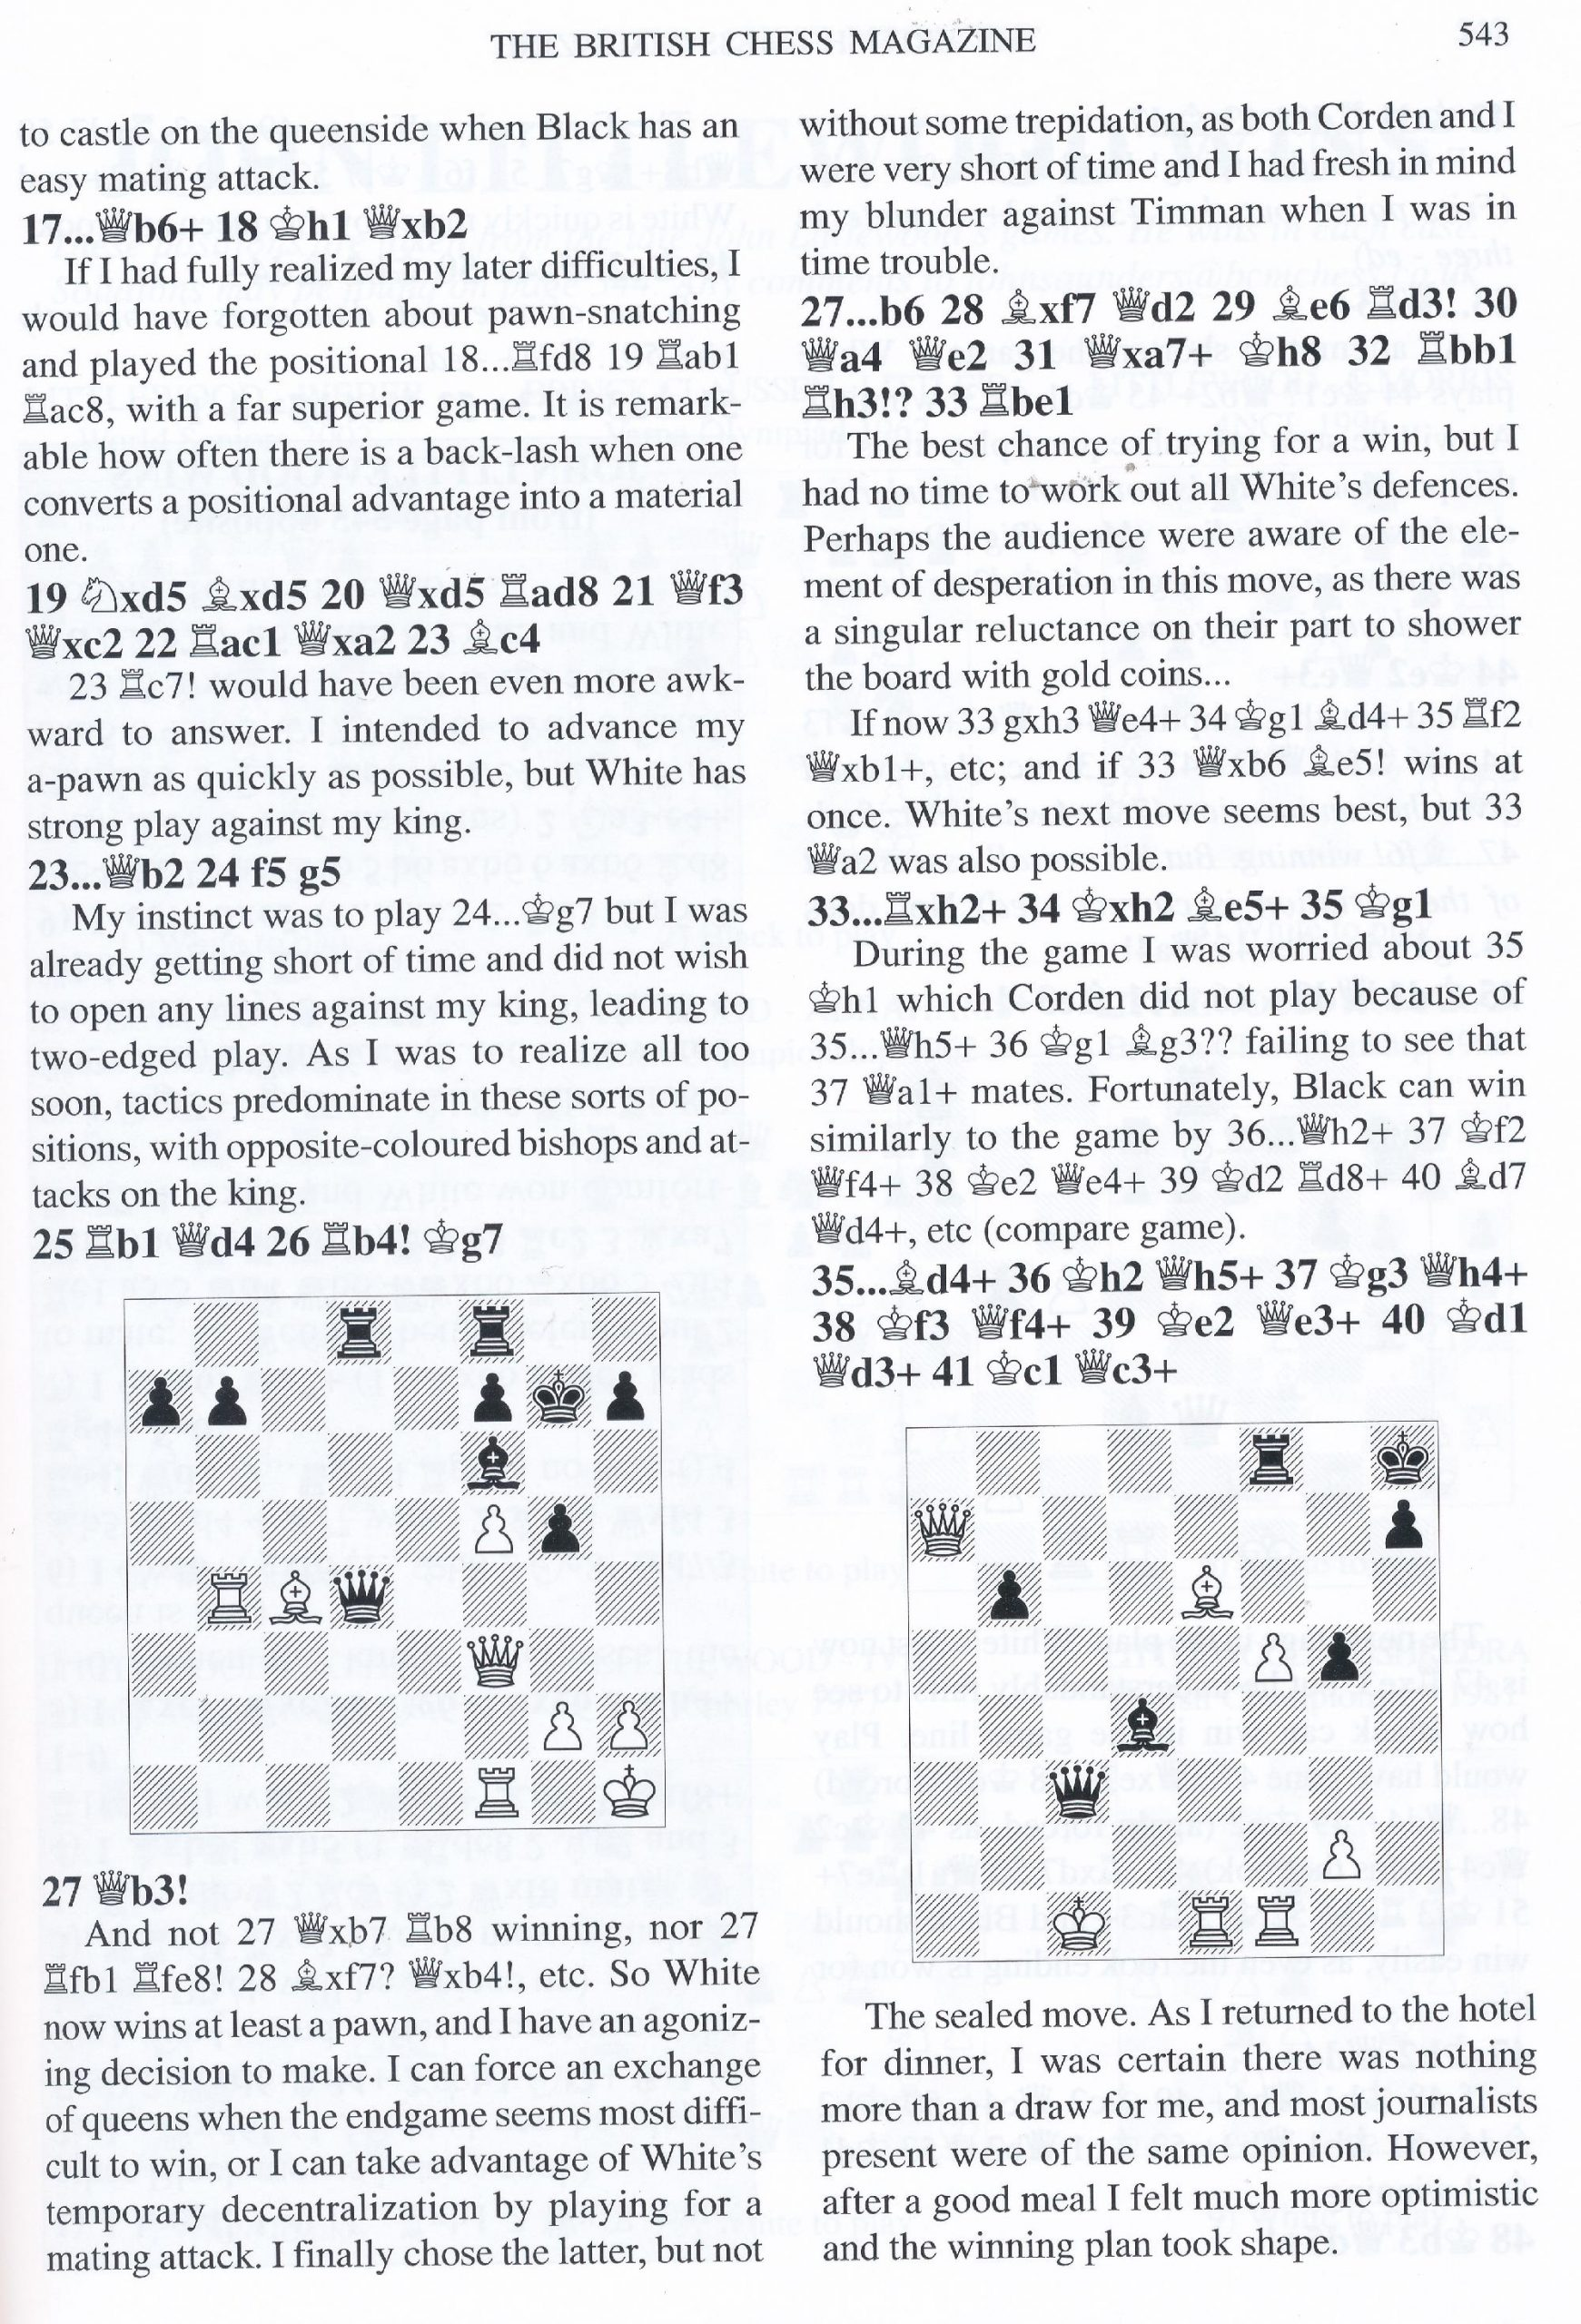 British Chess Magazine, Volume CXXIV (129), 2009, Number 10, October, page 543